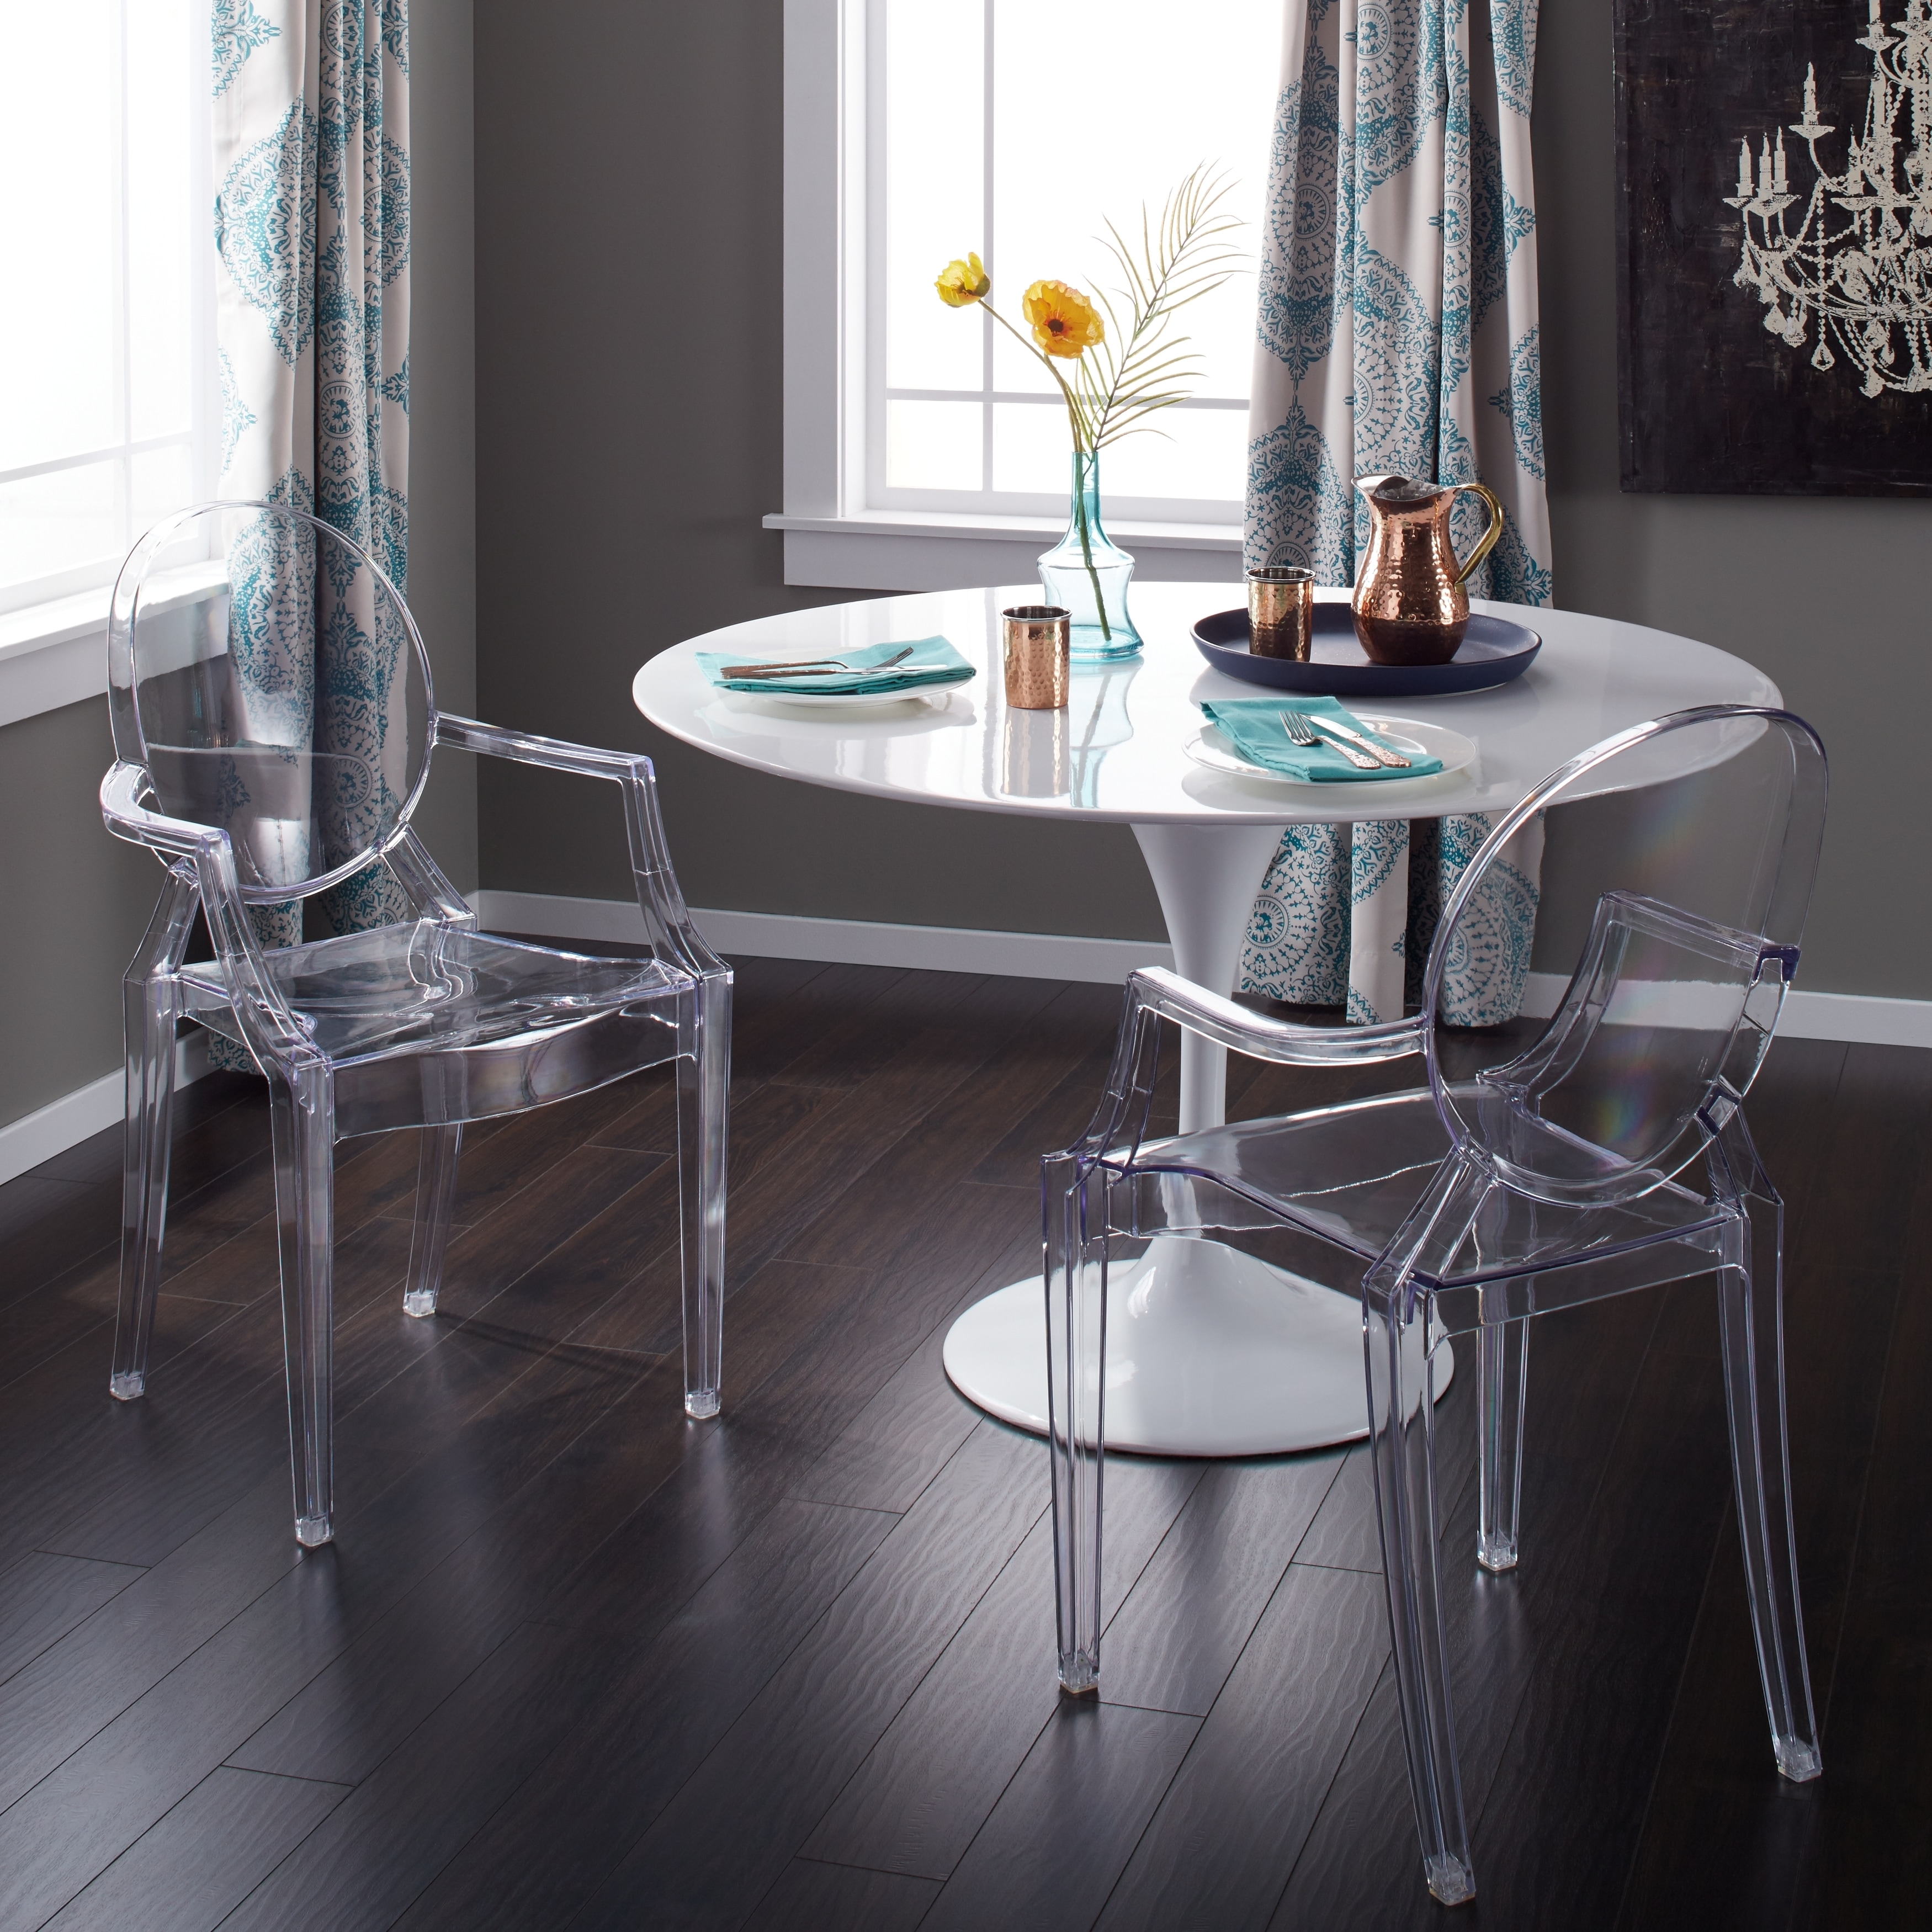 best website c59ee 7e672 Buy Clear Kitchen & Dining Room Chairs Online at Overstock ...